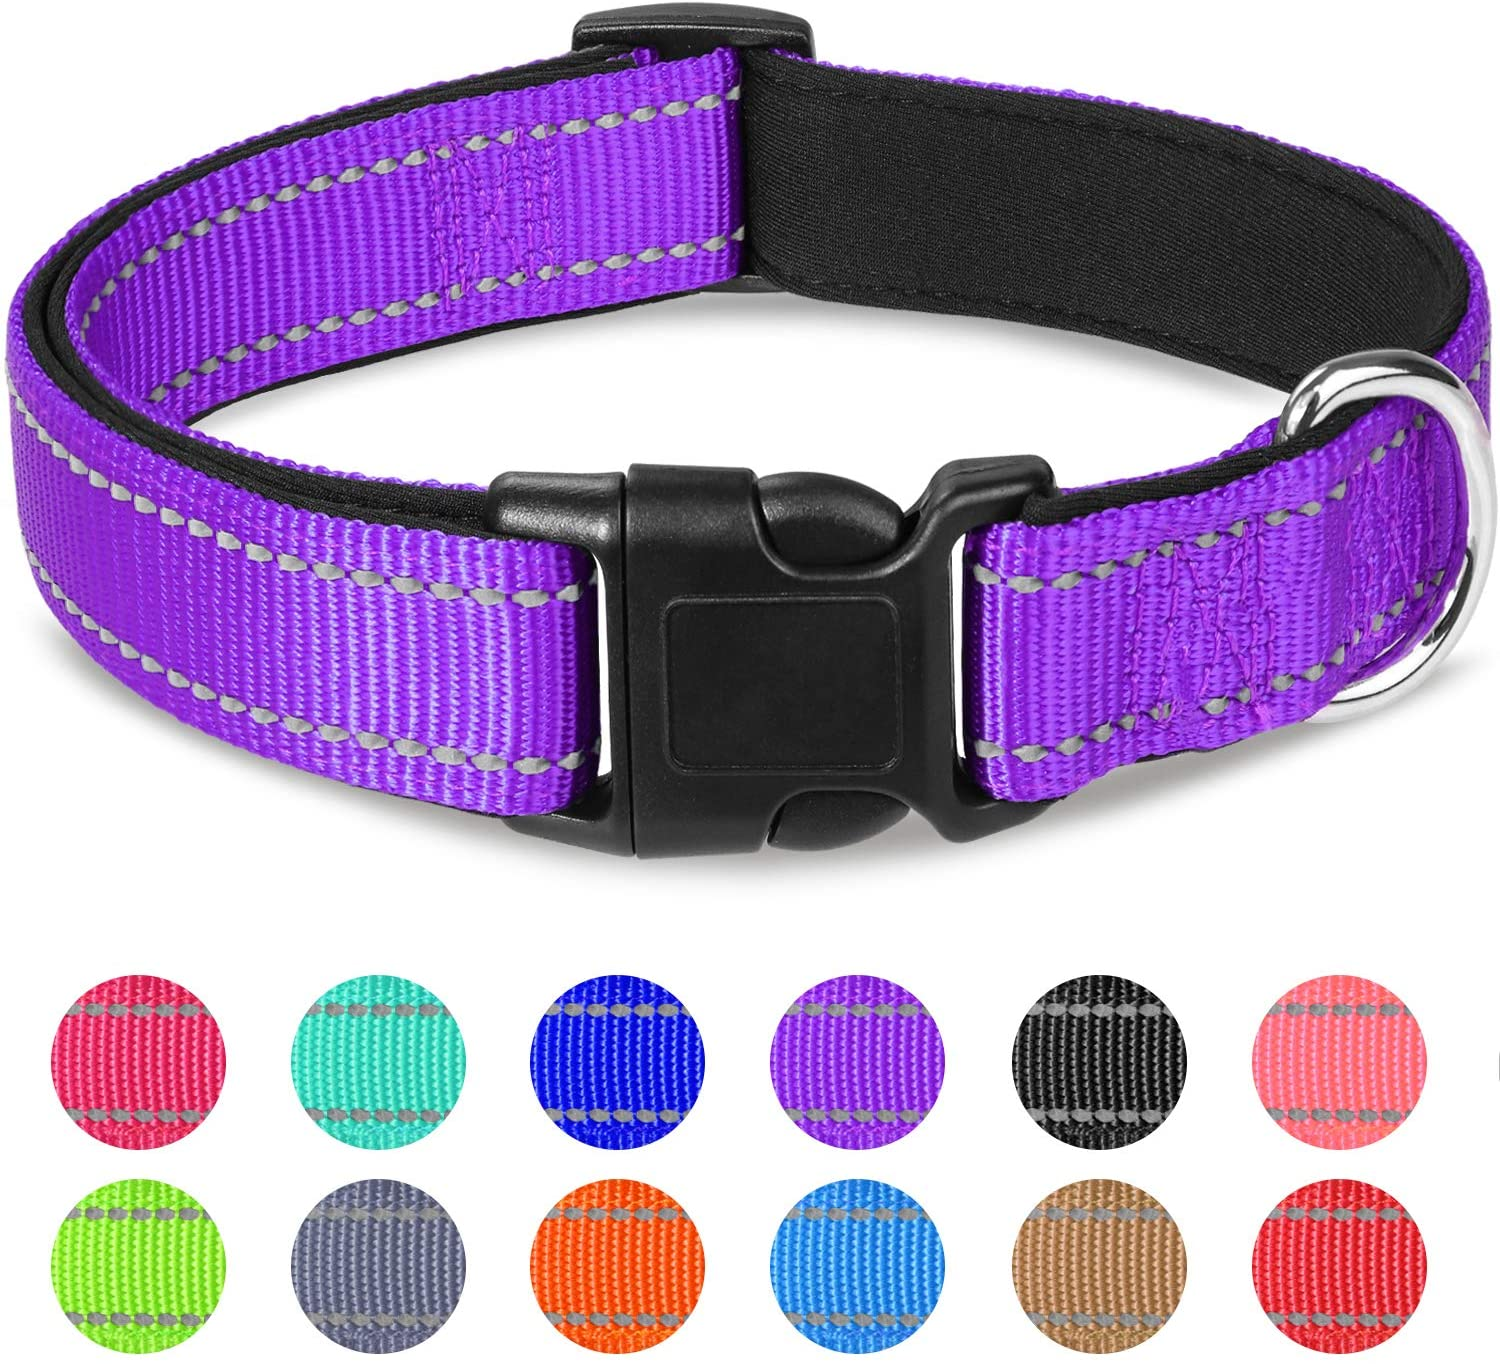 Joytale Reflective Dog Collar,12 Colors,Soft Neoprene Padded Breathable Nylon Pet Collar Adjustable for Small Medium Large Dogs,4 Sizes